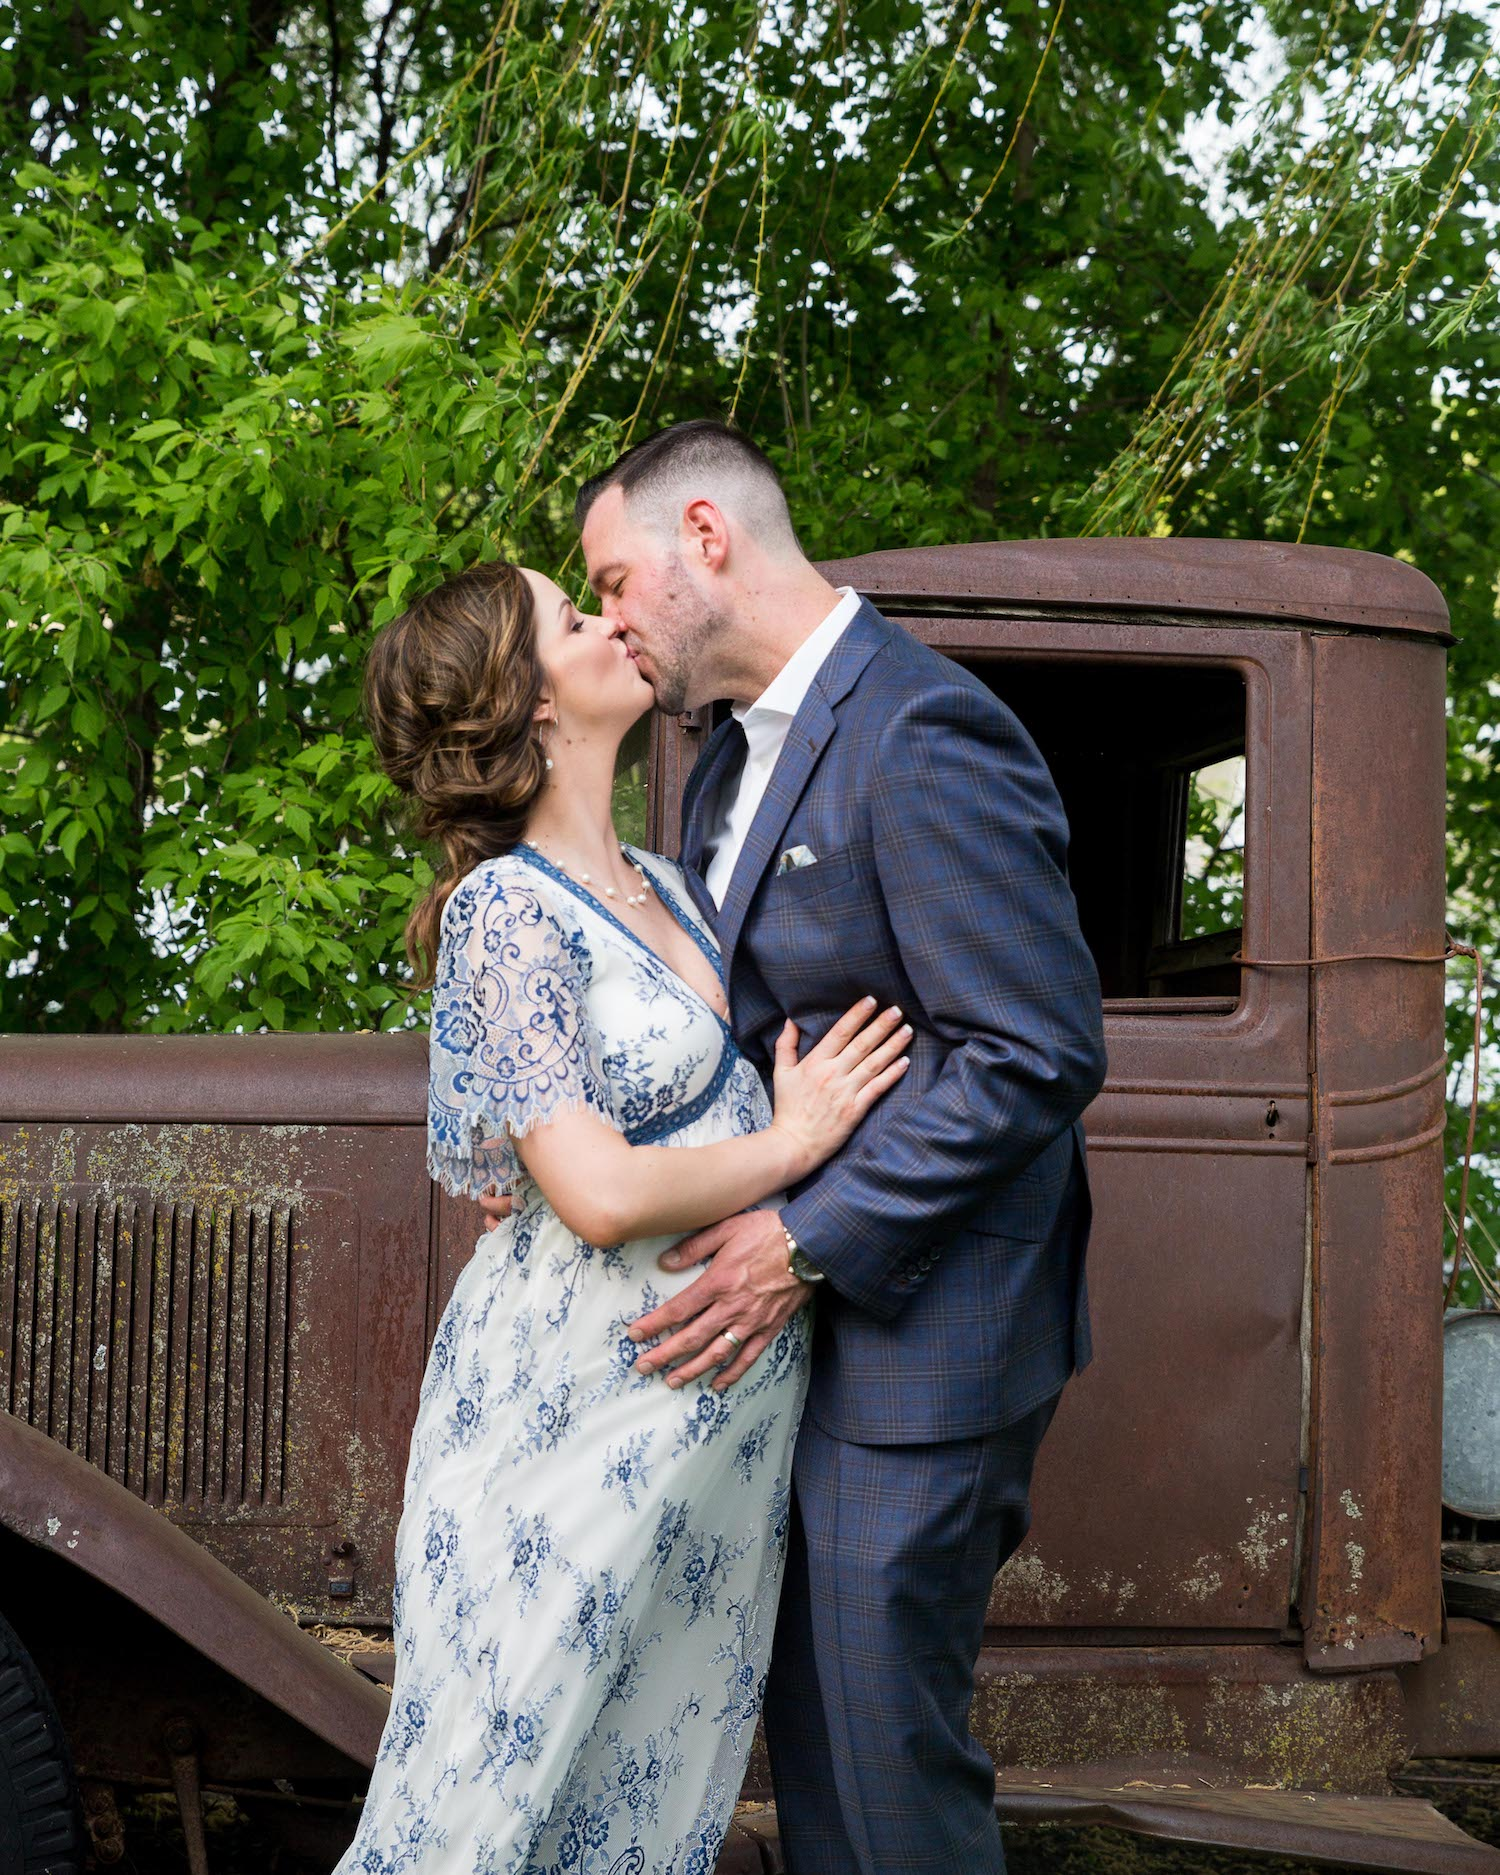 Cindyrella's Garden, pregnant bride in blue and white lace wedding dress, old rusted truck